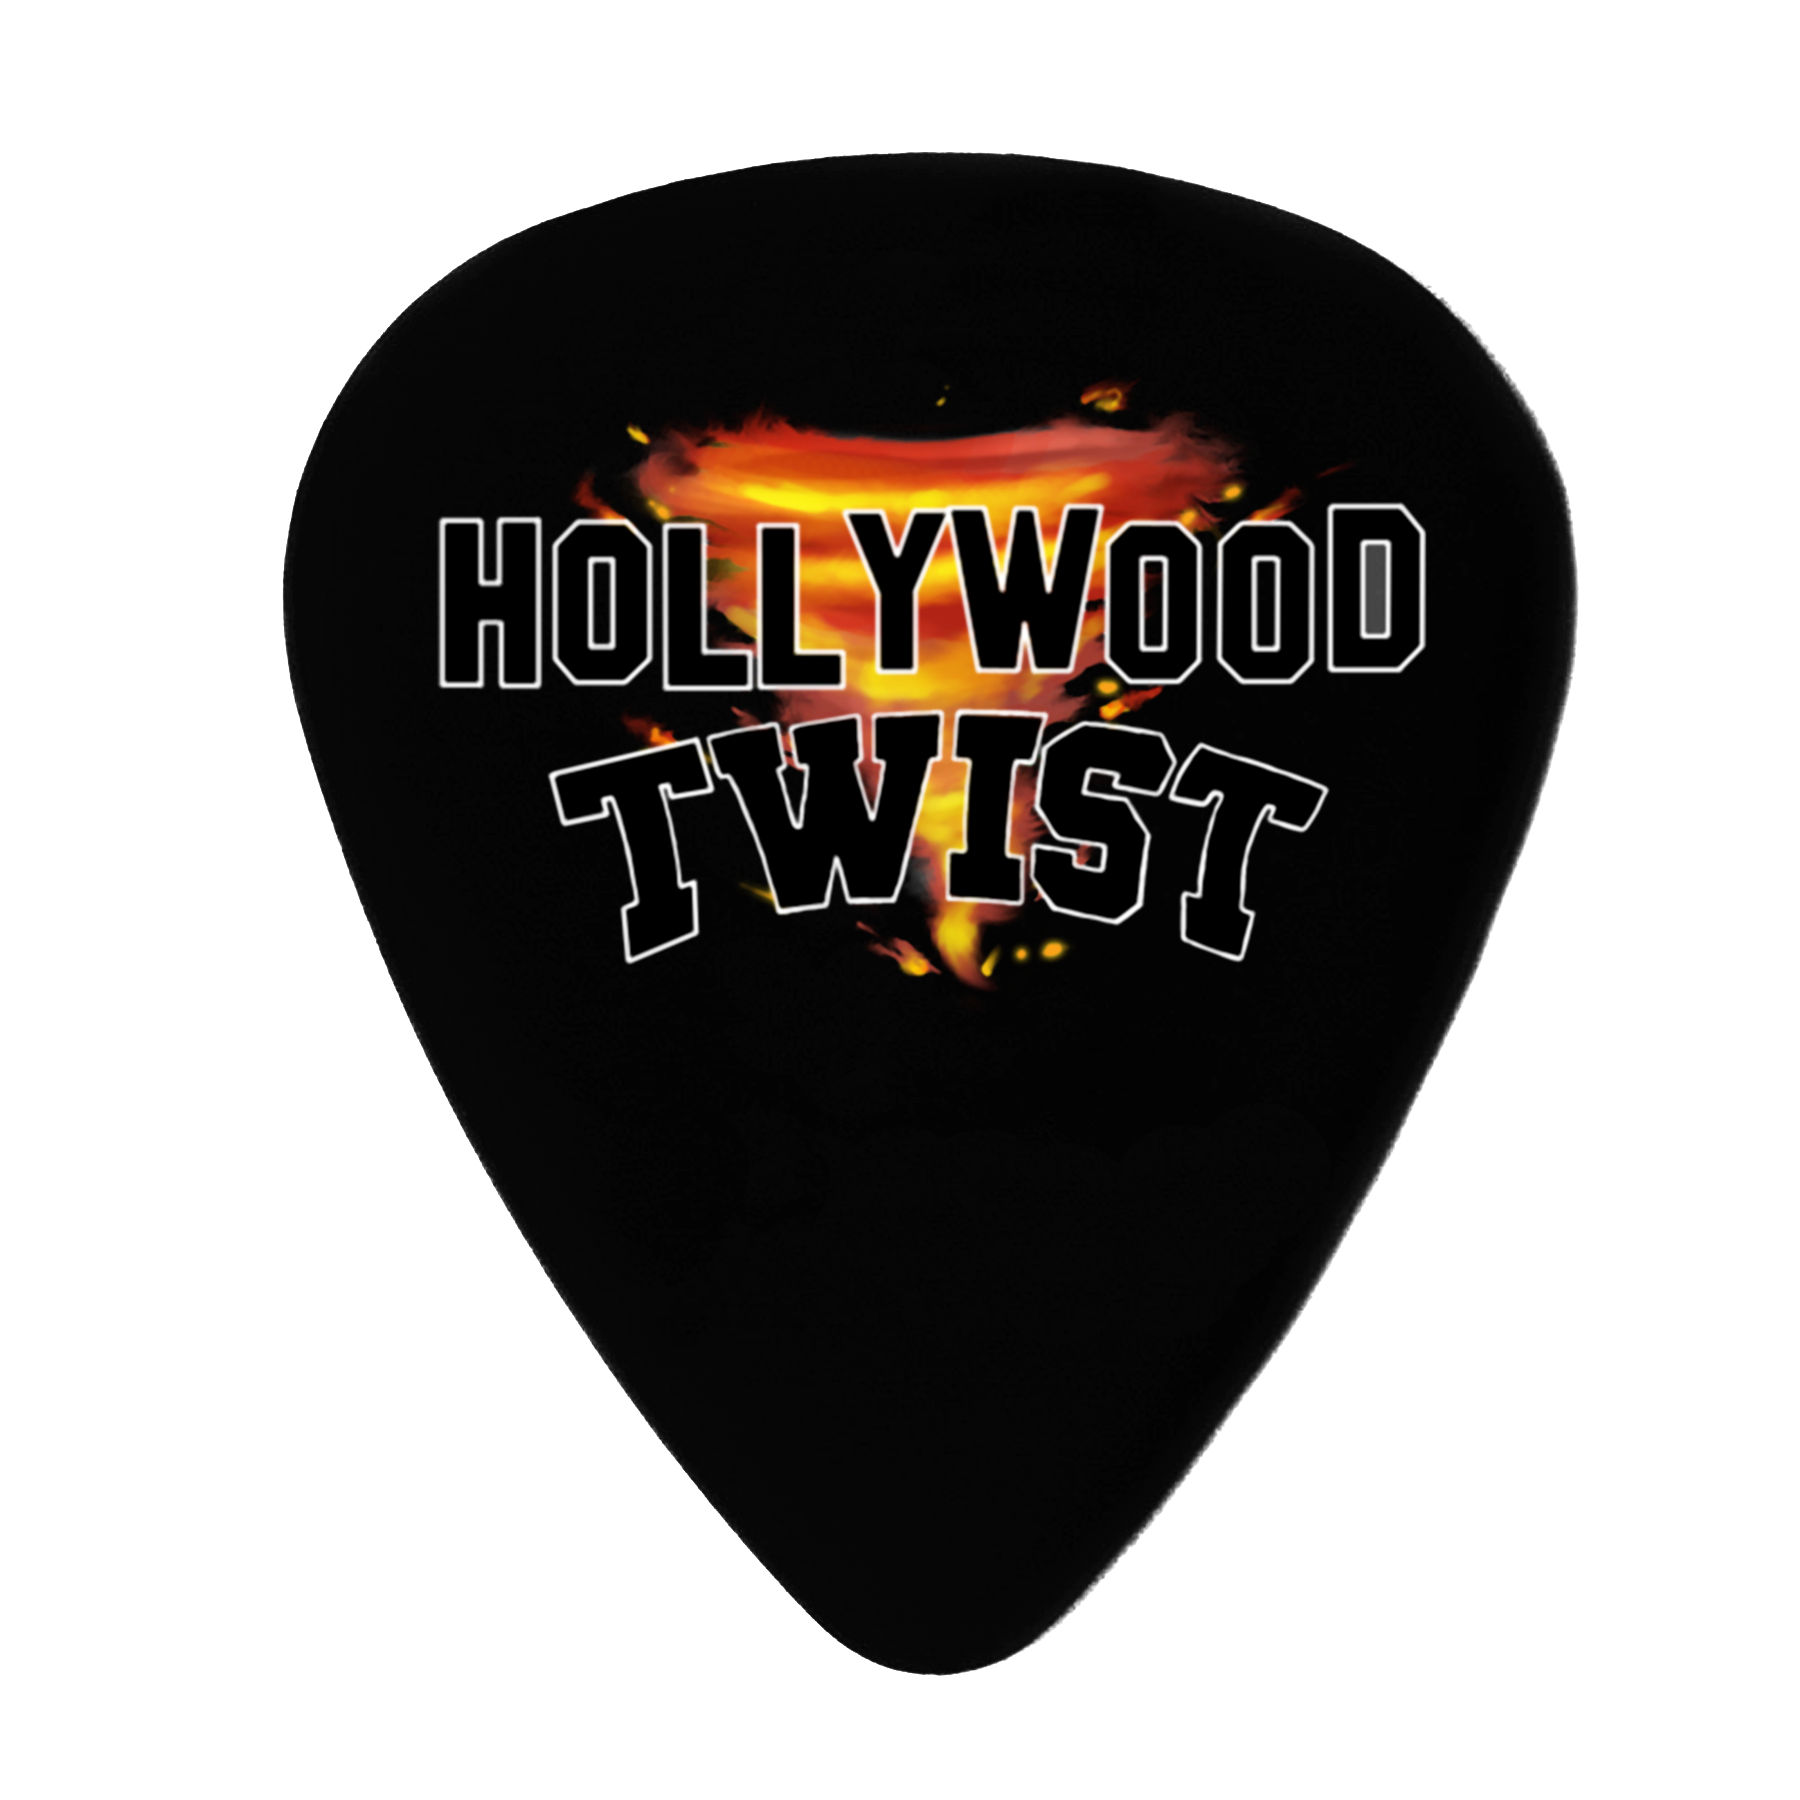 Hollywood Twist - 5 Púas Guitarra Decorativas Logo - Merchanfy Imprime tus camisetas